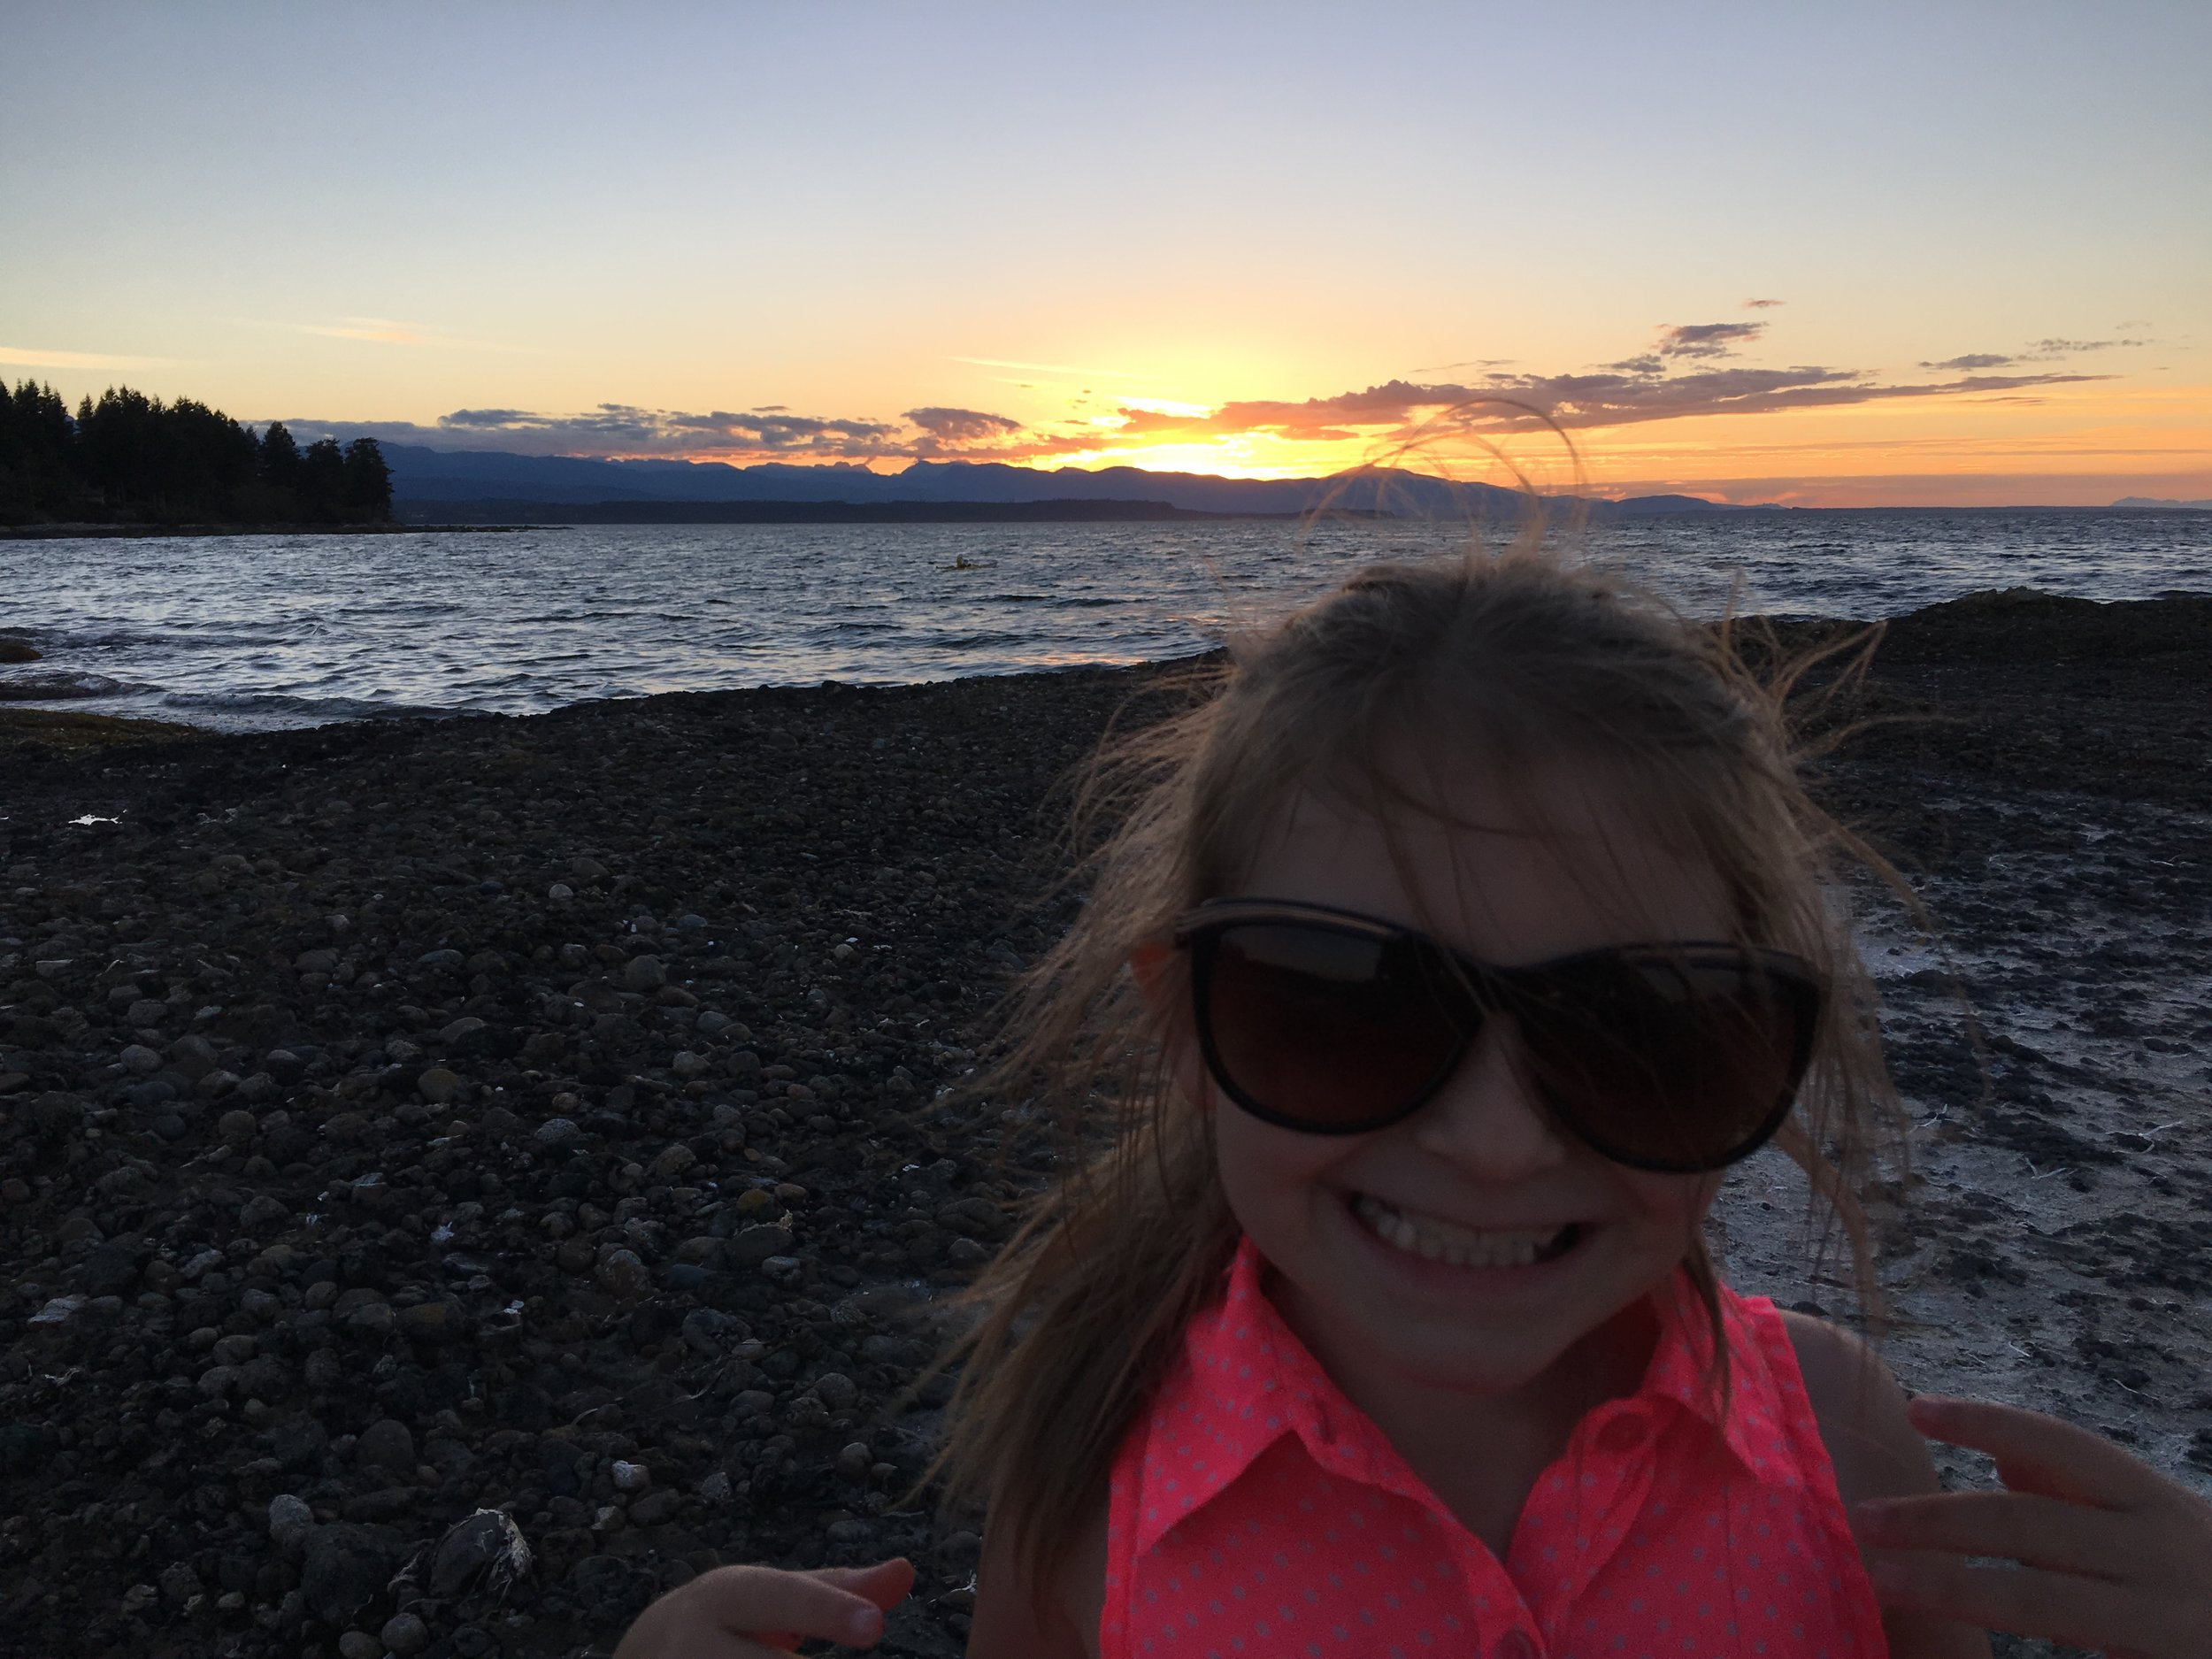 My daughter loving the beach at sunset